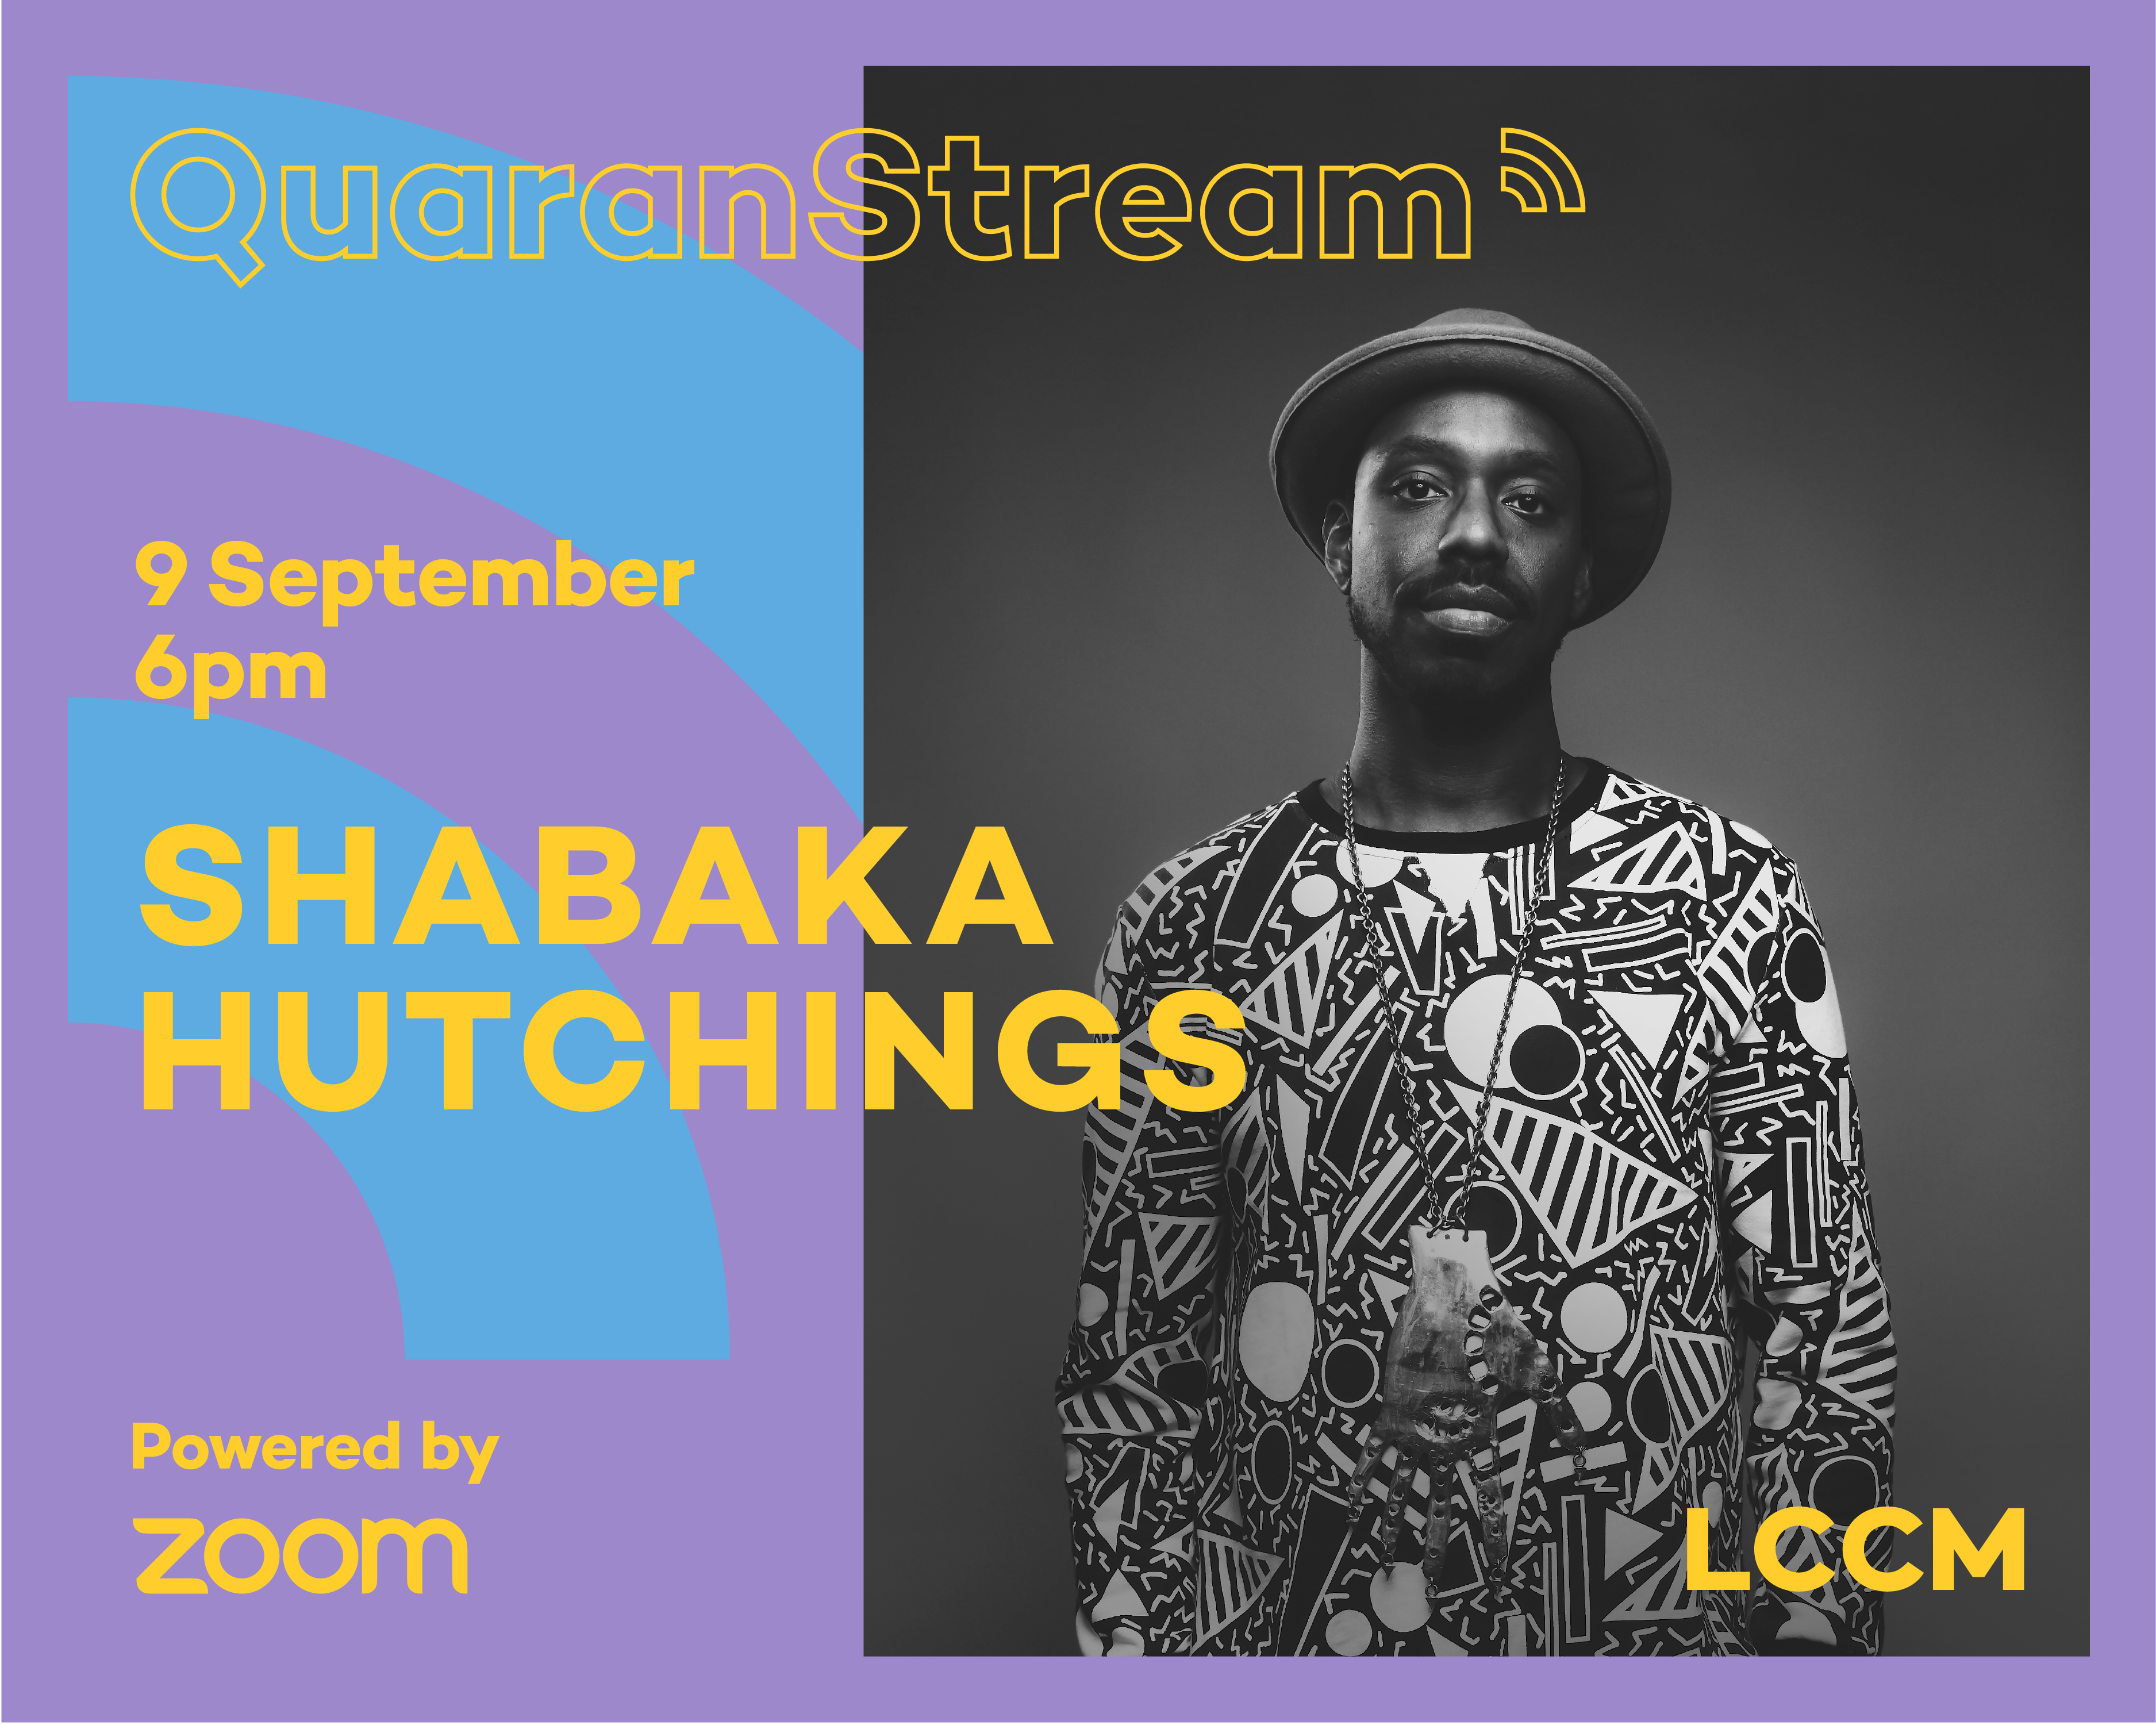 LCCM QuaranStream: Shabaka Hutchings